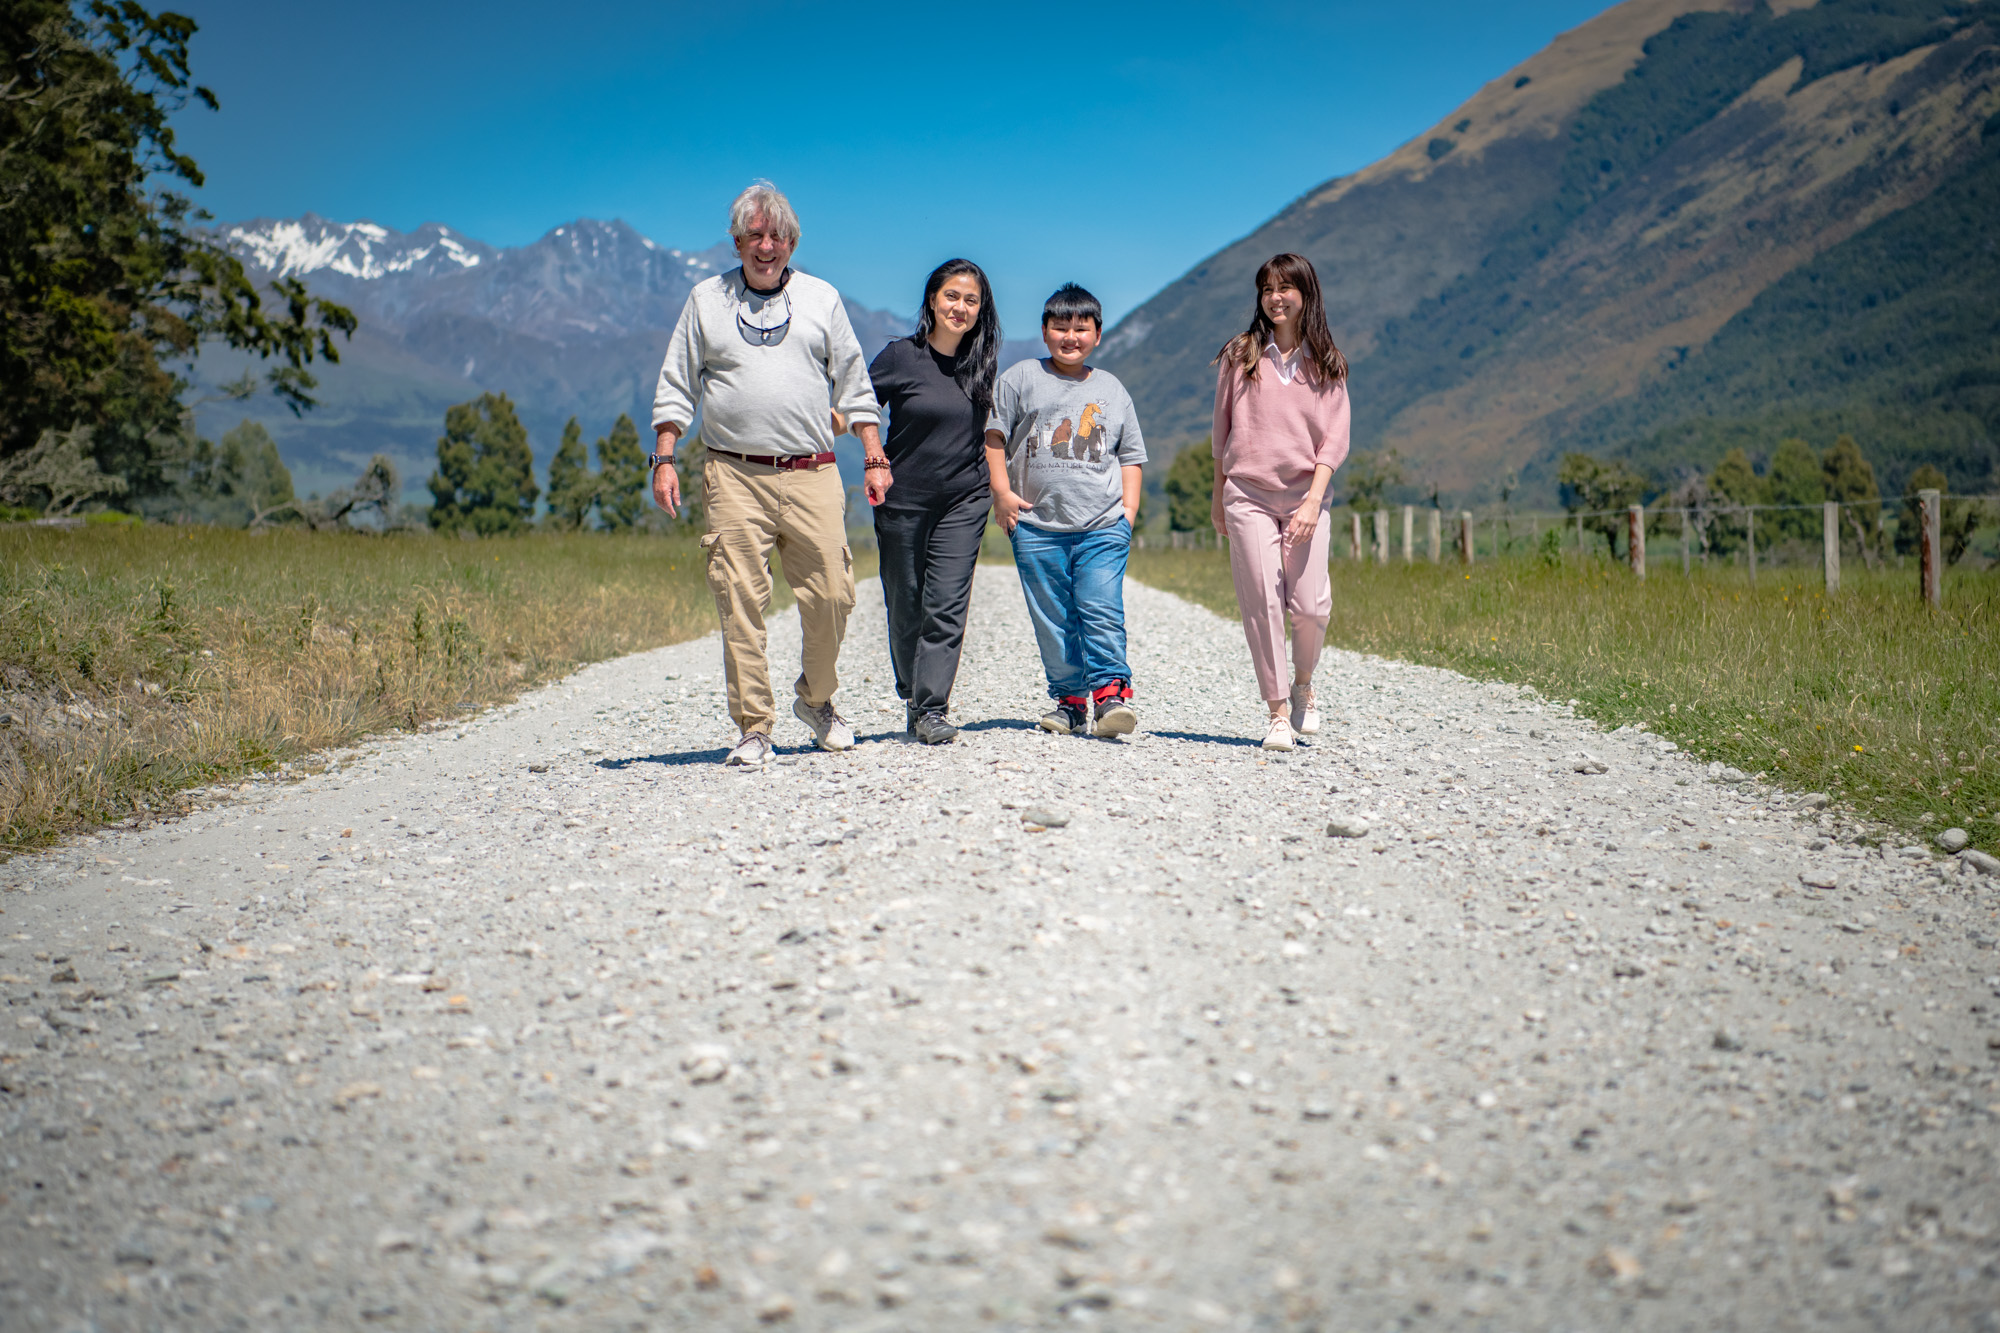 Iconic photographs at Queenstown New Zealand's Points of Interest